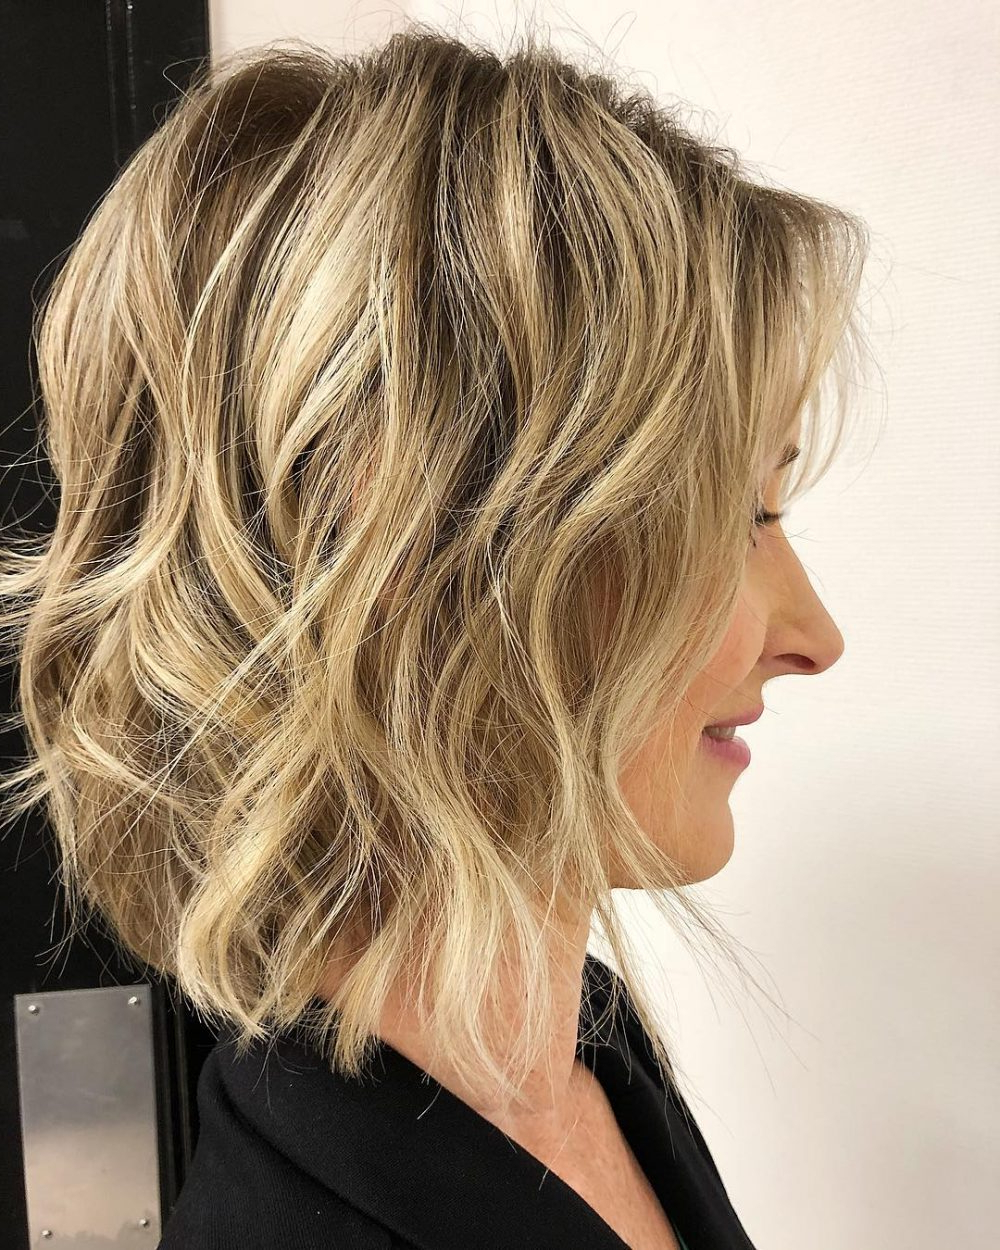 43 Perfect Short Hairstyles For Fine Hair In 2018 In Short Hairstyles With Bangs For Fine Hair (View 6 of 25)